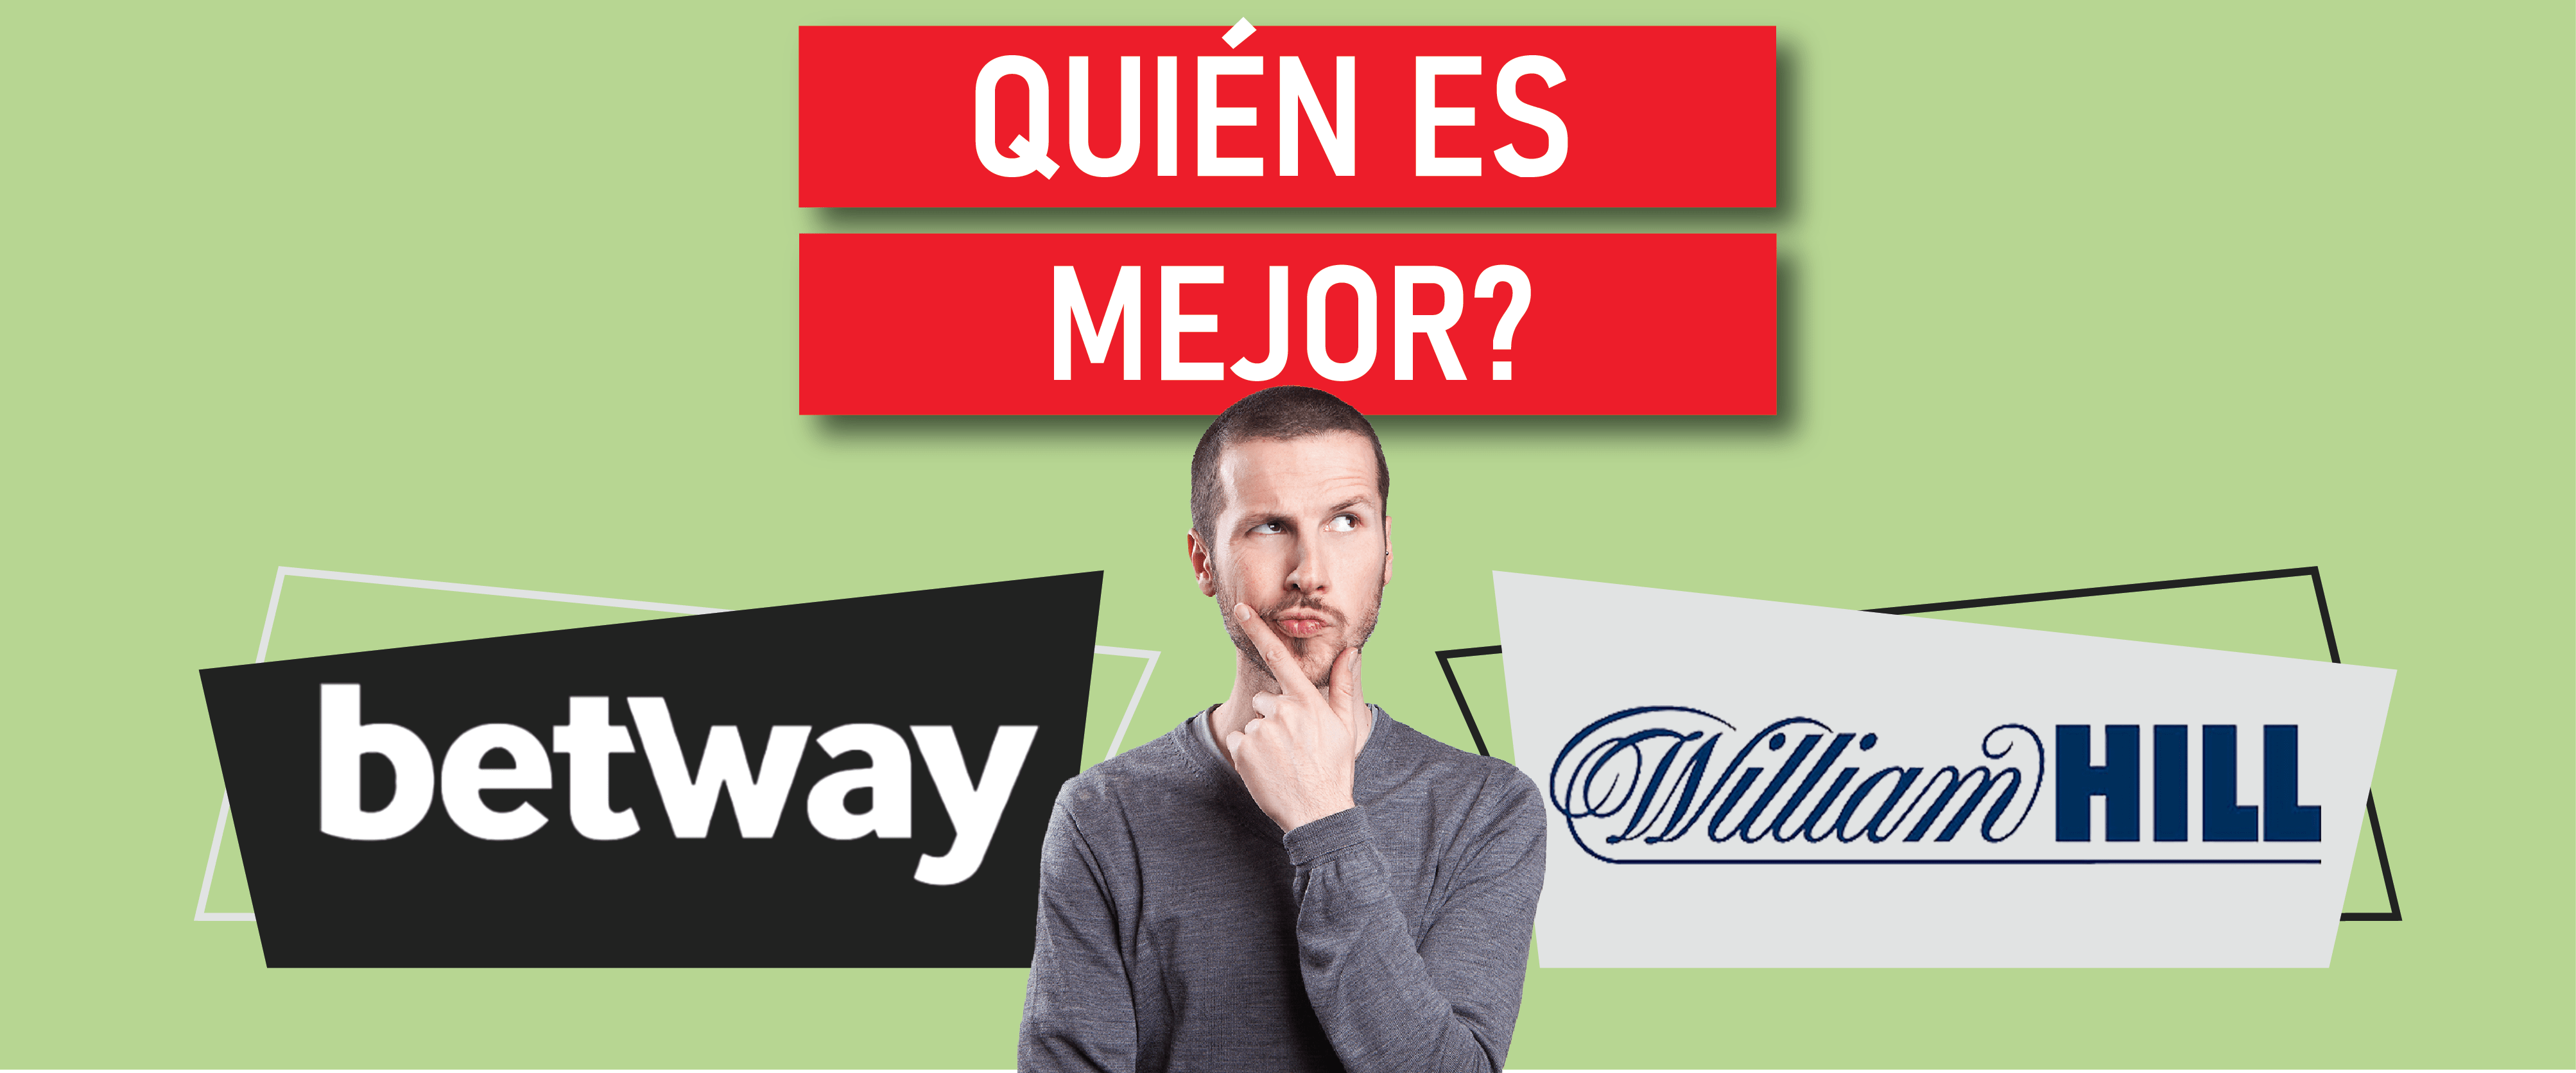 betway o william hill